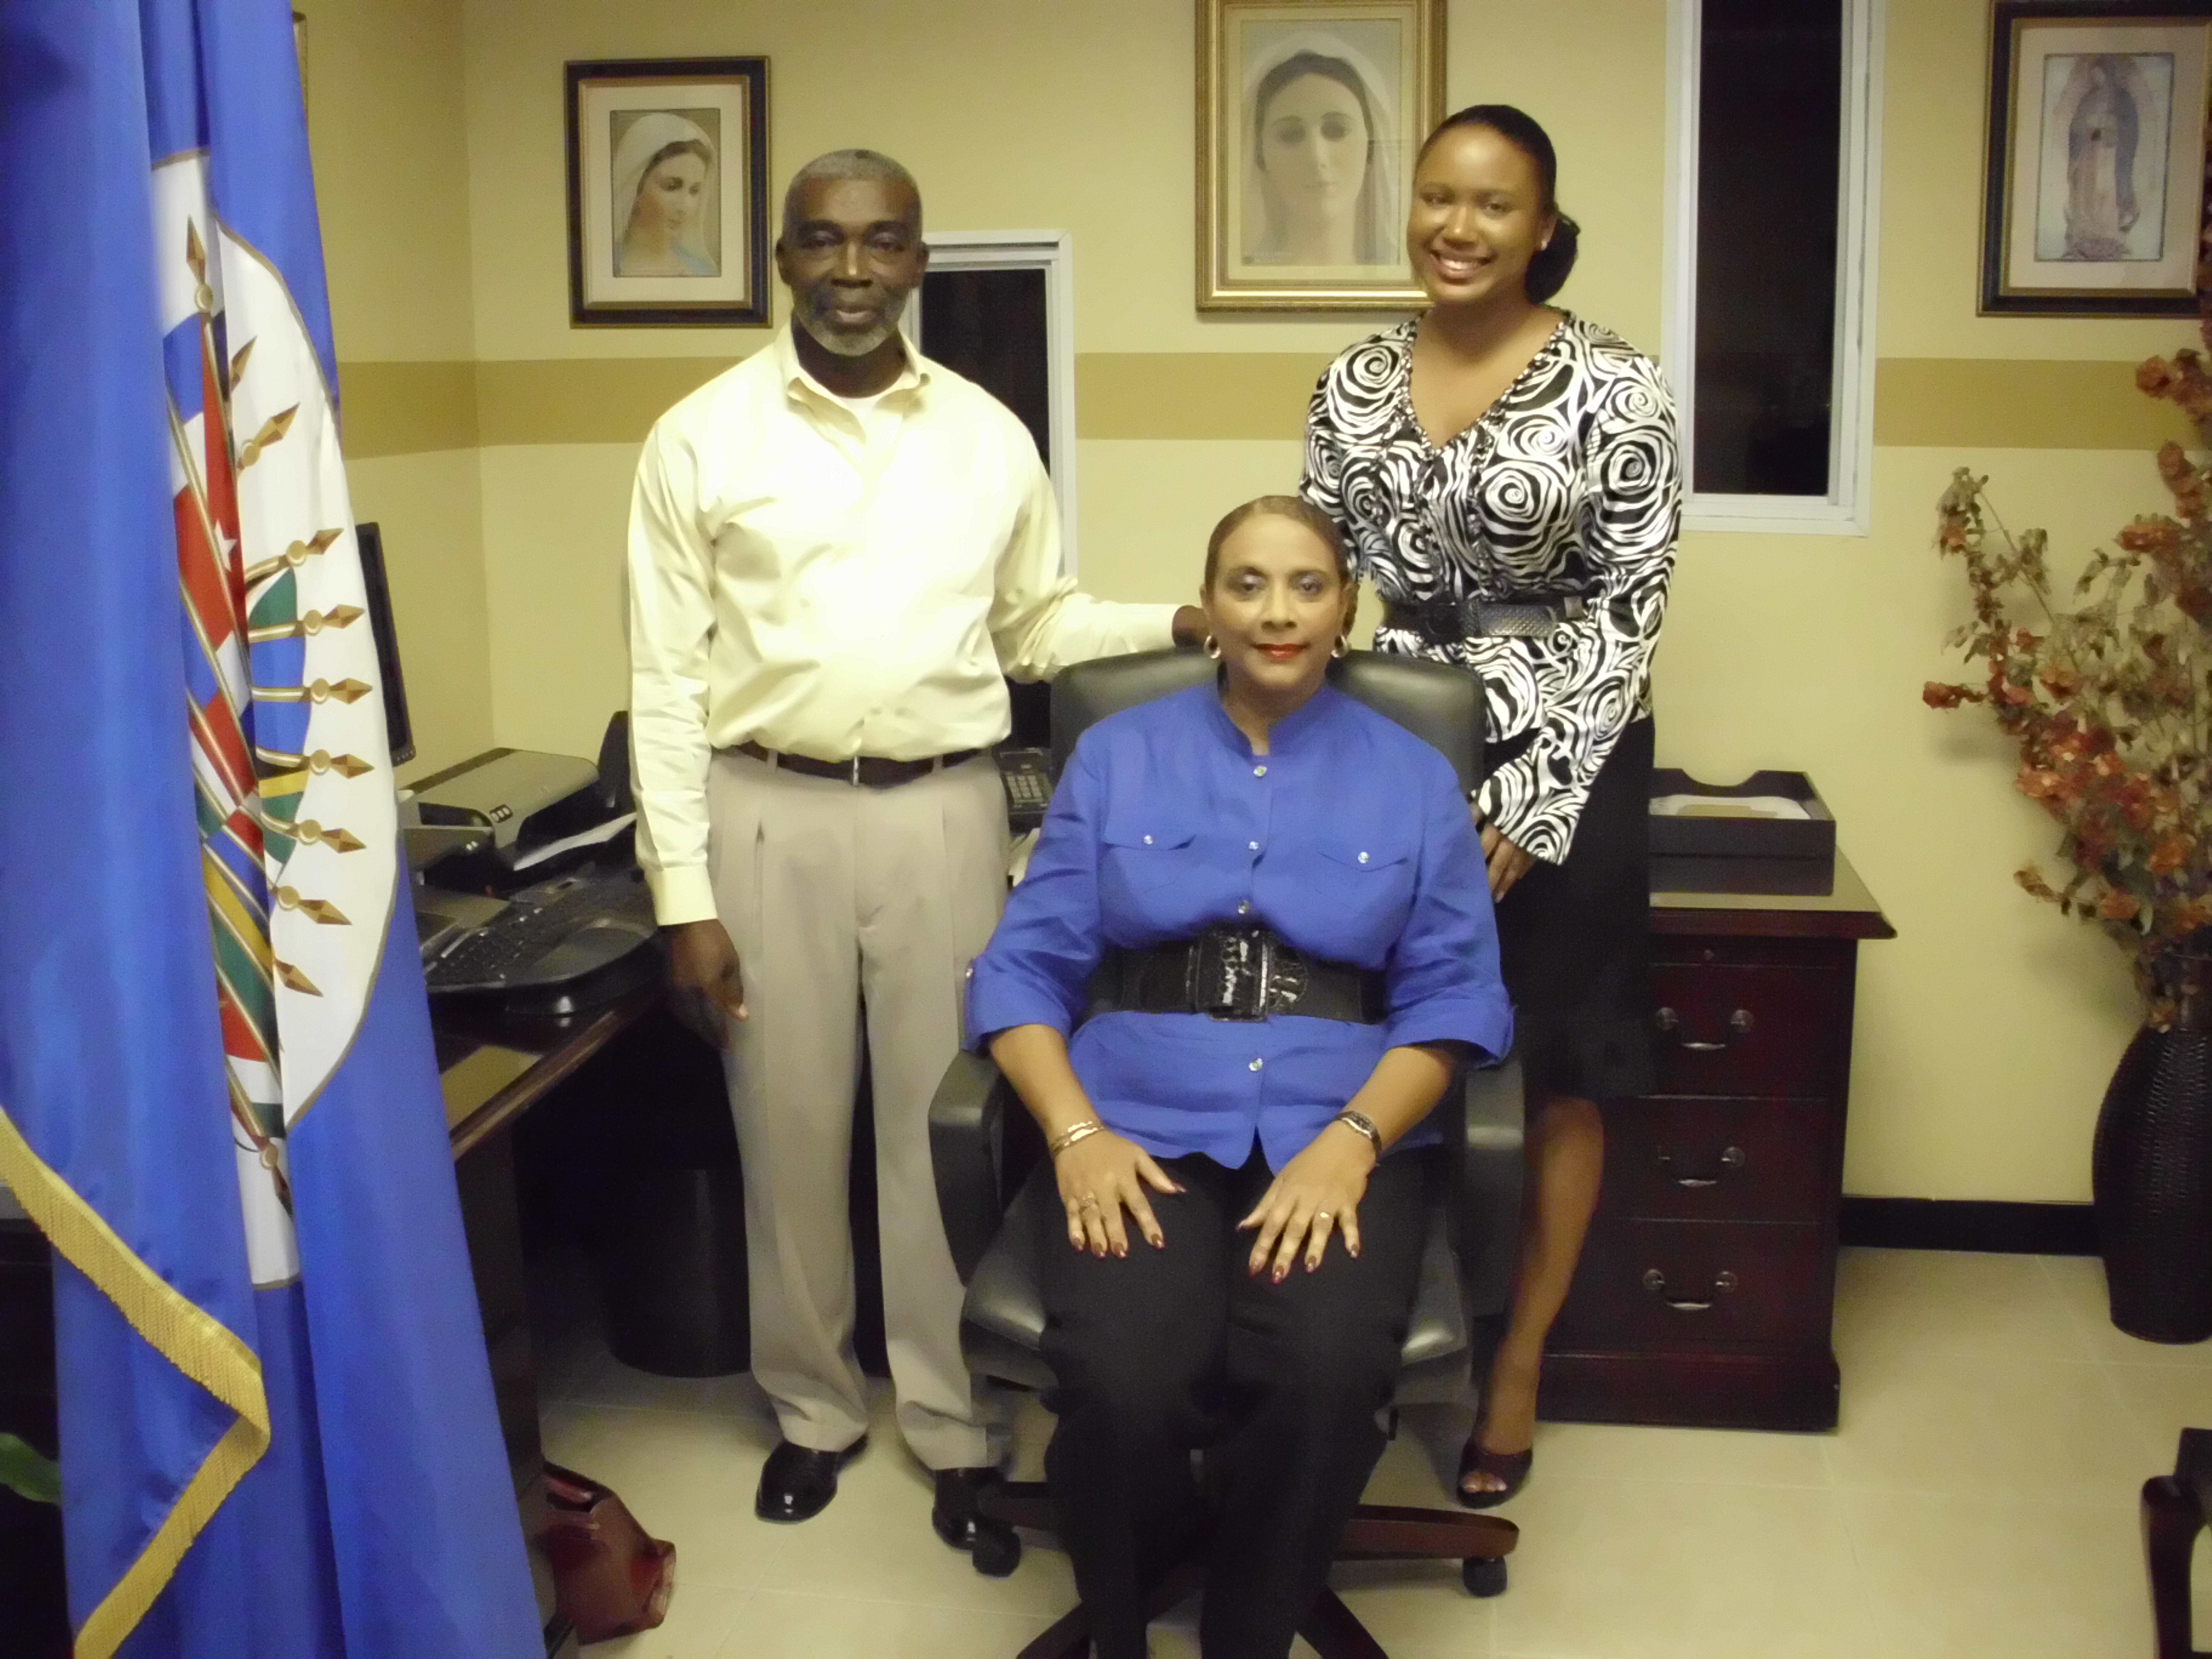 GS/OAS Office in Jamaica staff members- Dr. Joan C. Neil, Representative, ( Center), Ms. Kerry-Ann Parchment, Administrative Technician ( Right), Mr. Lloyd Campbell, Messenger Chauffeur ( Left)